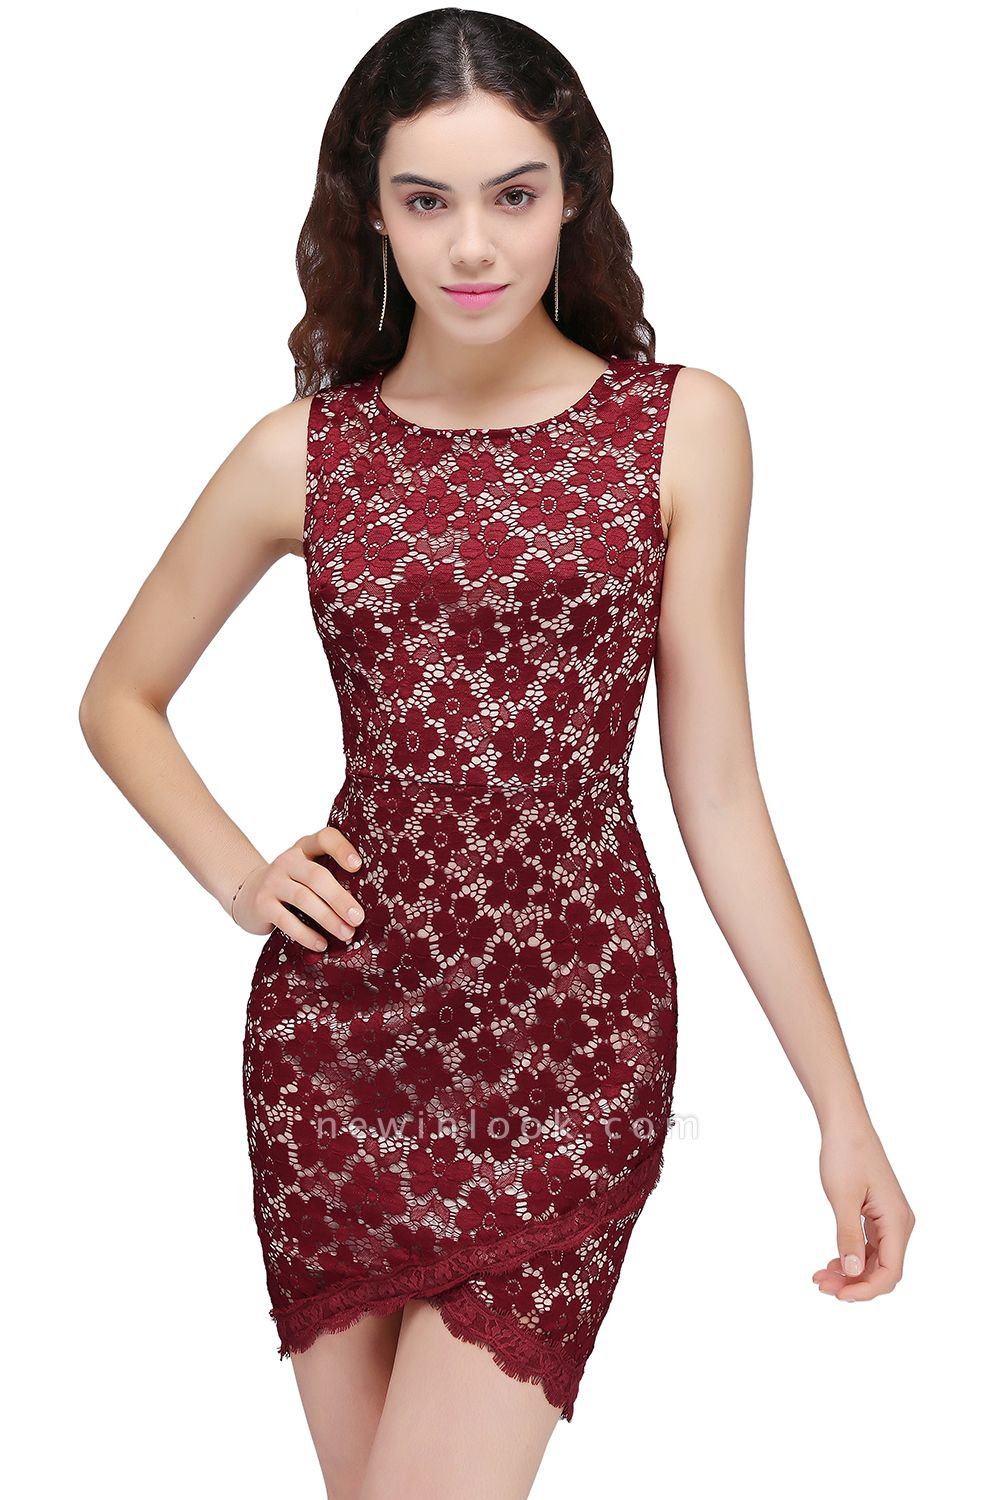 BRILEY | Bodycon Round Neck Short Lace Burgundy Quince Dama Dresses